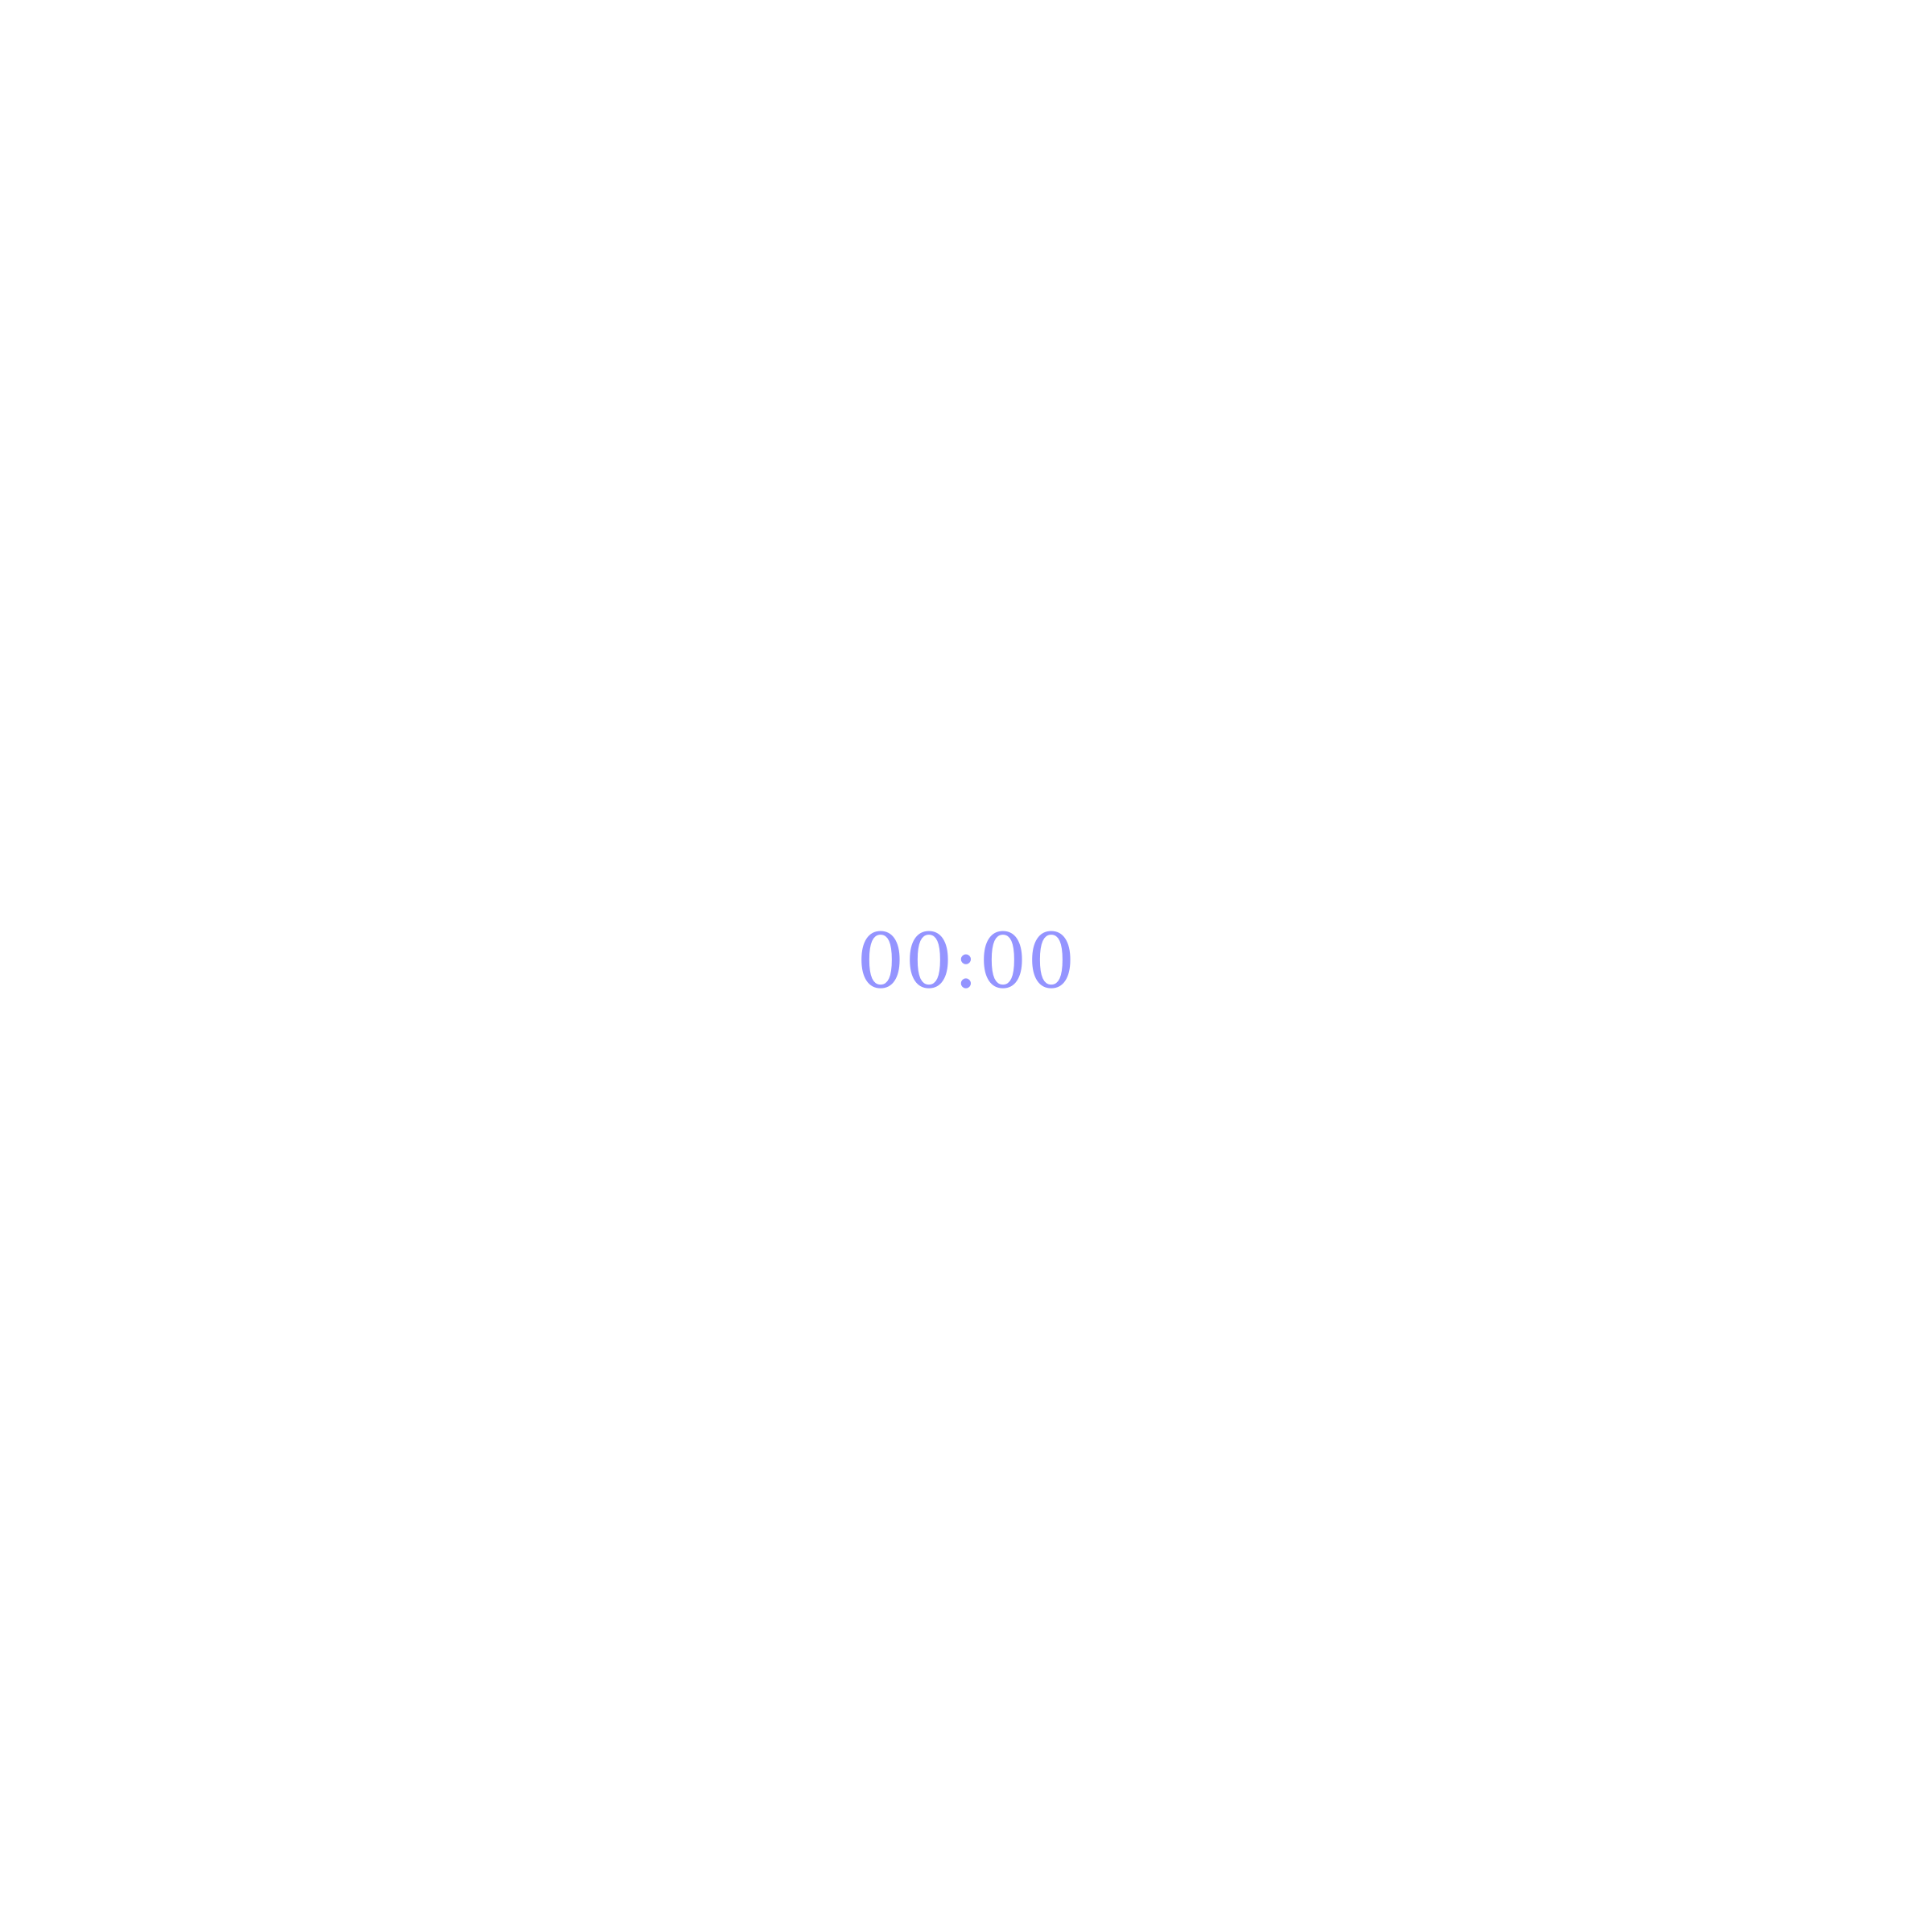 Smooth Upvote Clock with White Background by gringer